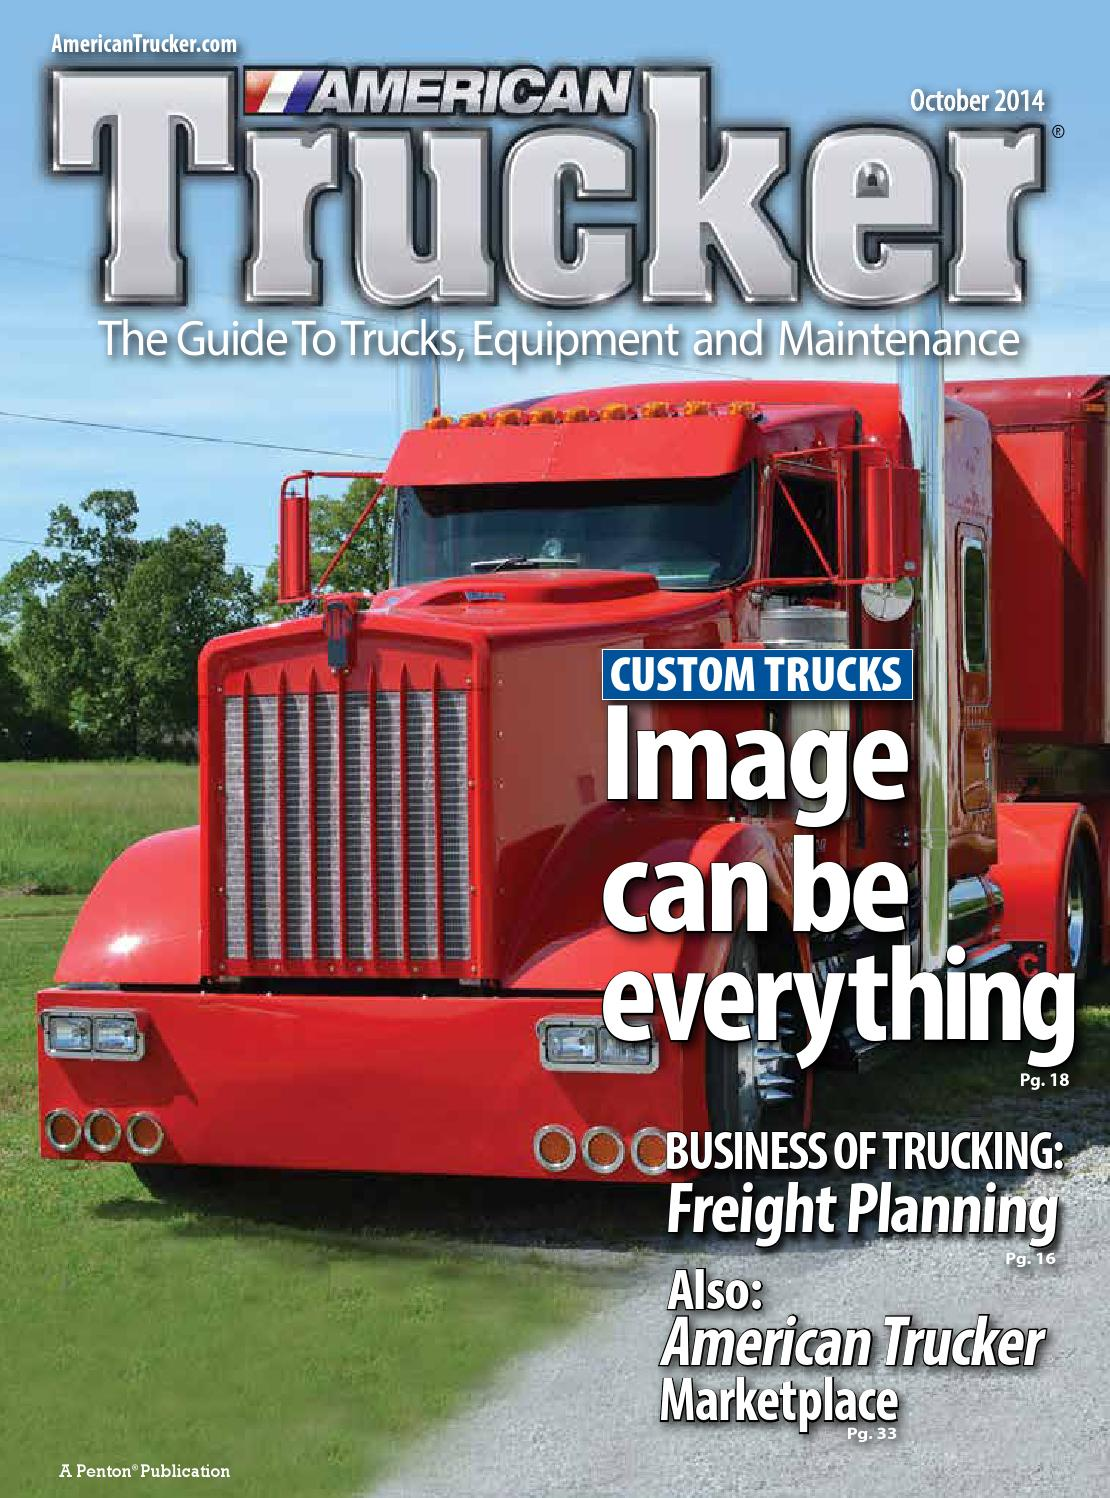 american trucker magazine - photo #15